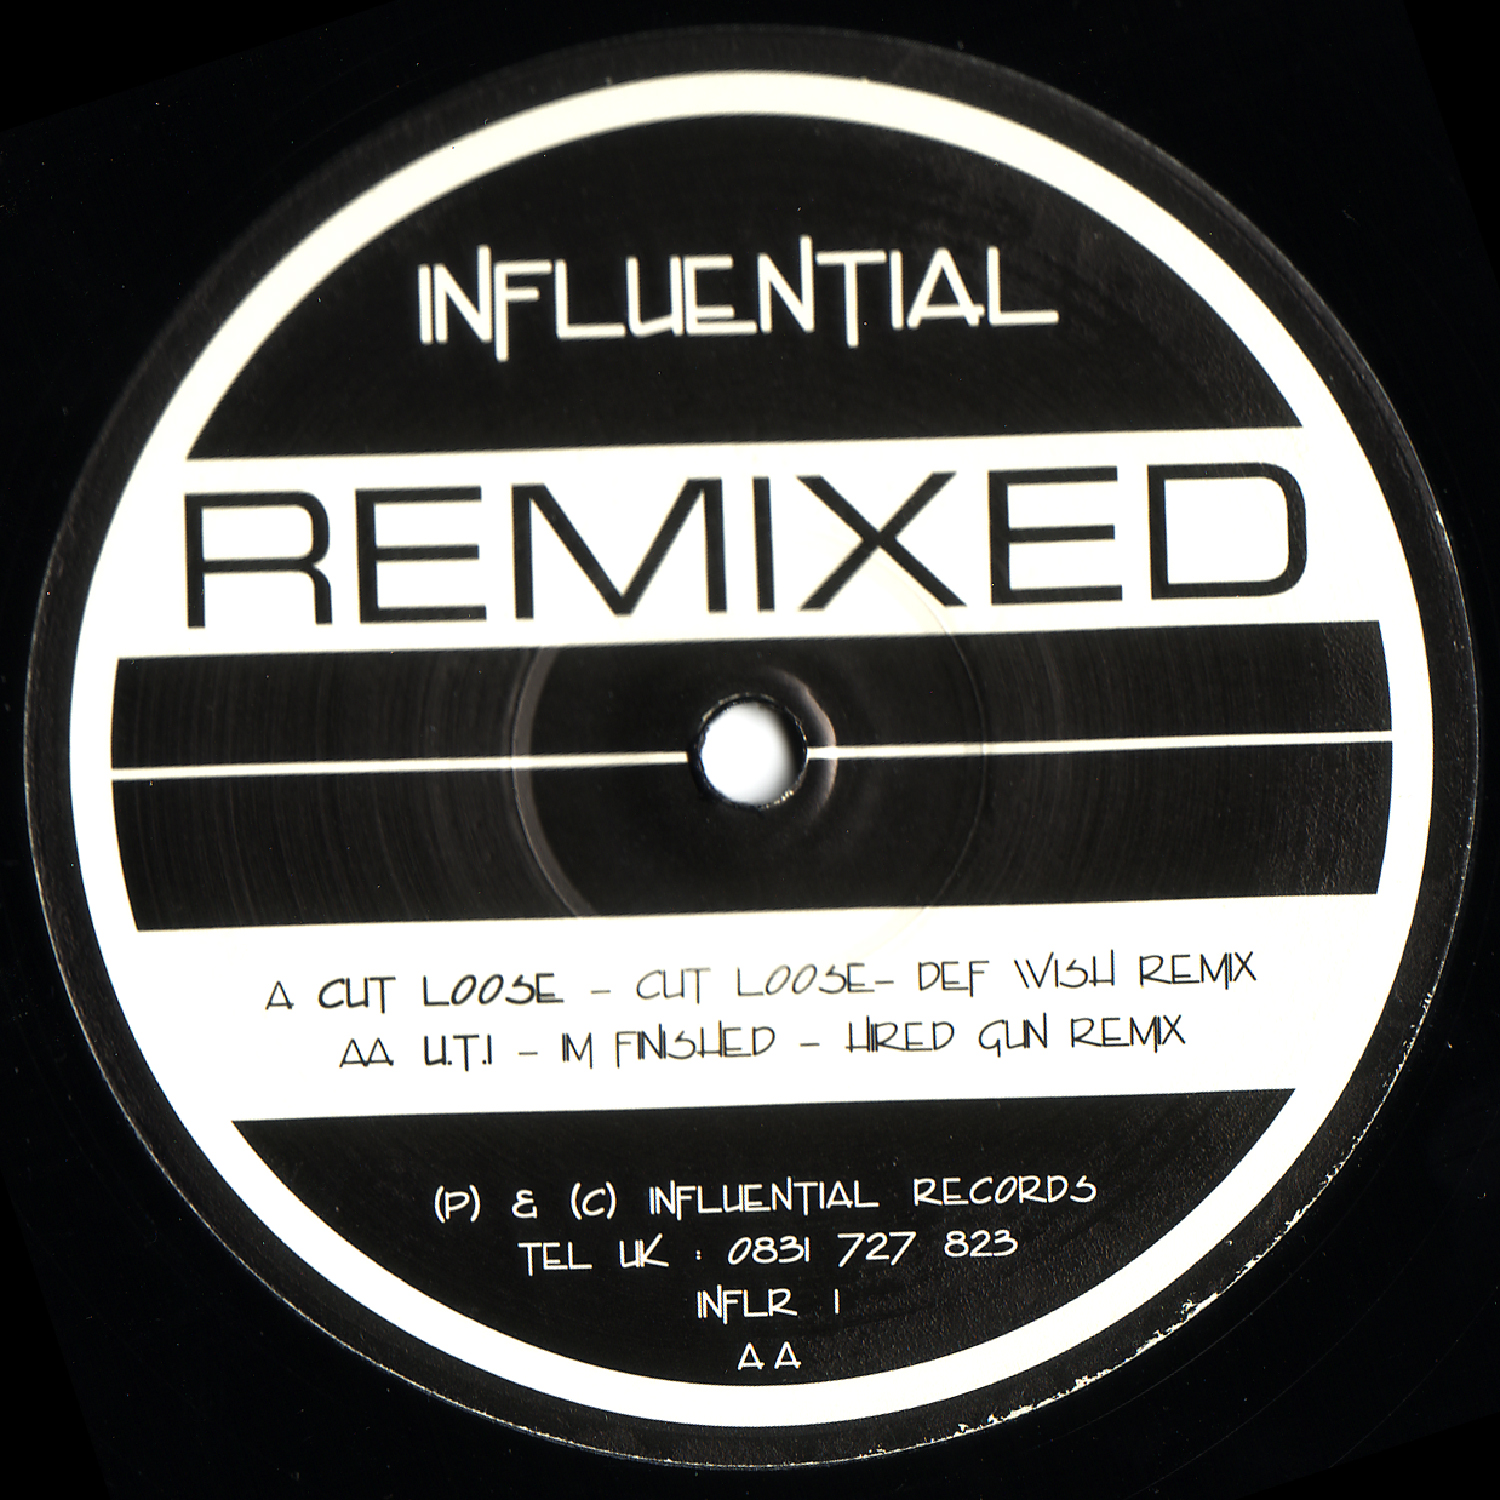 [INFLR001] Various - Influential Remixed 1 (Digital Only)